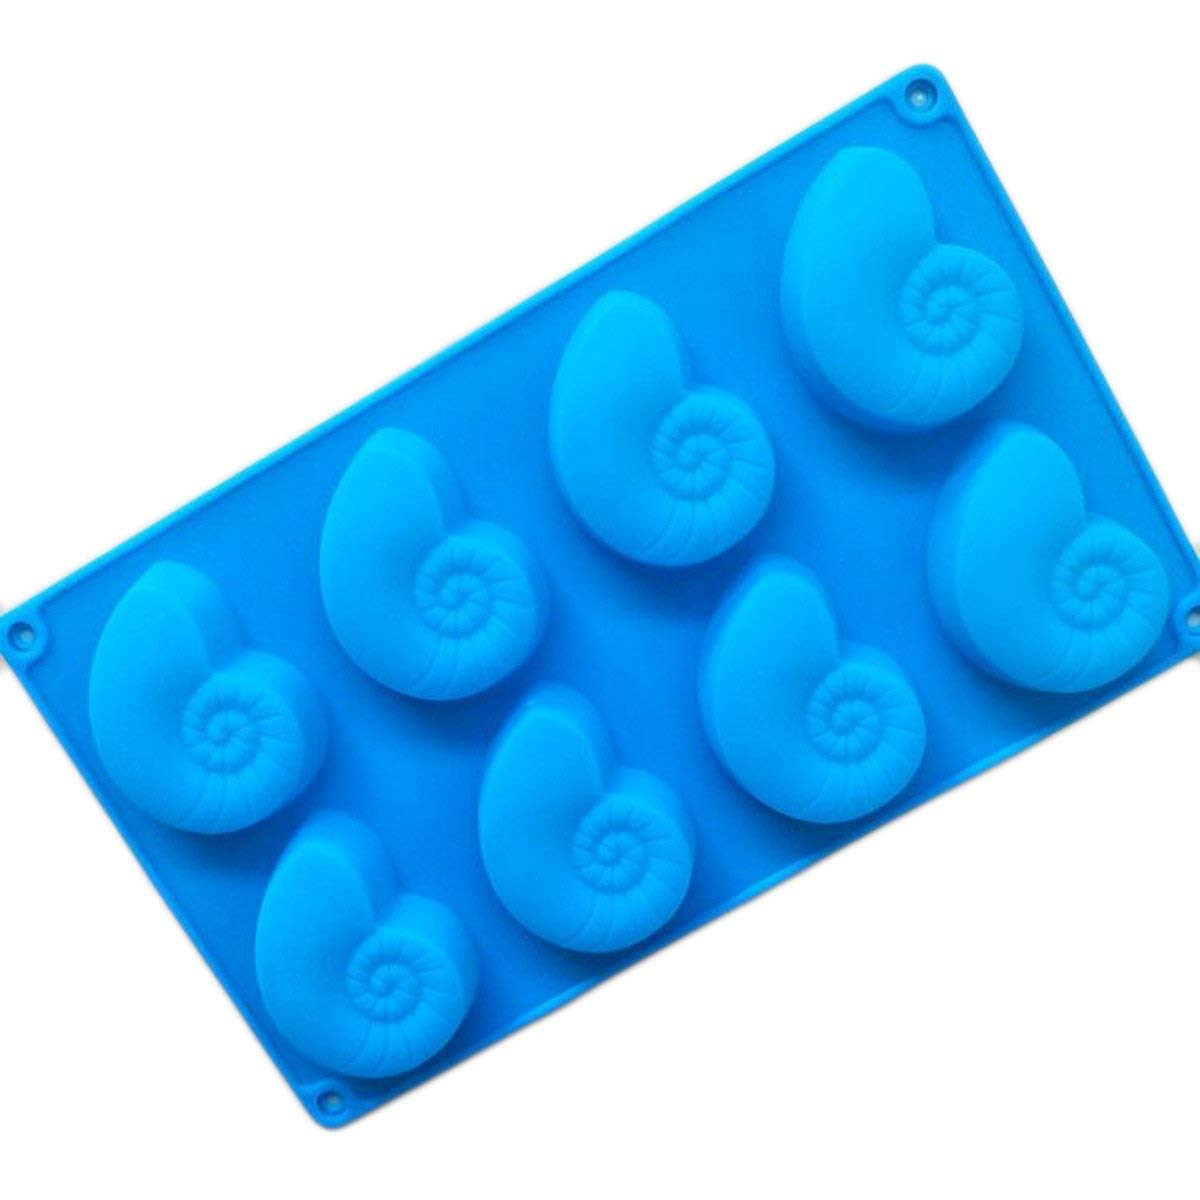 Longzang 8 Cavity Conch Silicone Mold for Cake Chocolate Panna Cotta Pudding Jelly Baking Soap molds